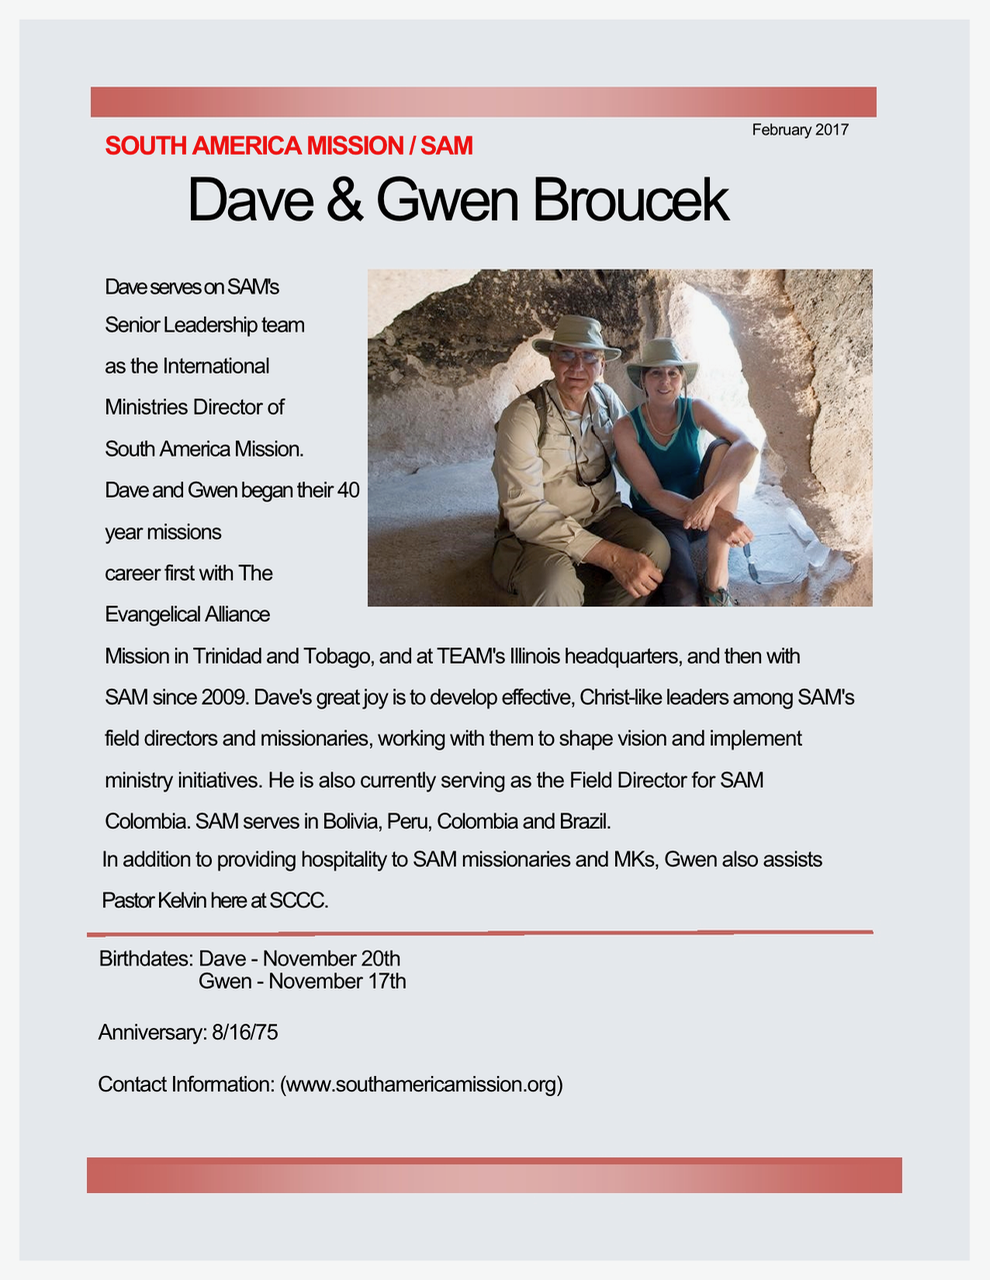 Dave and Gwen Broucek